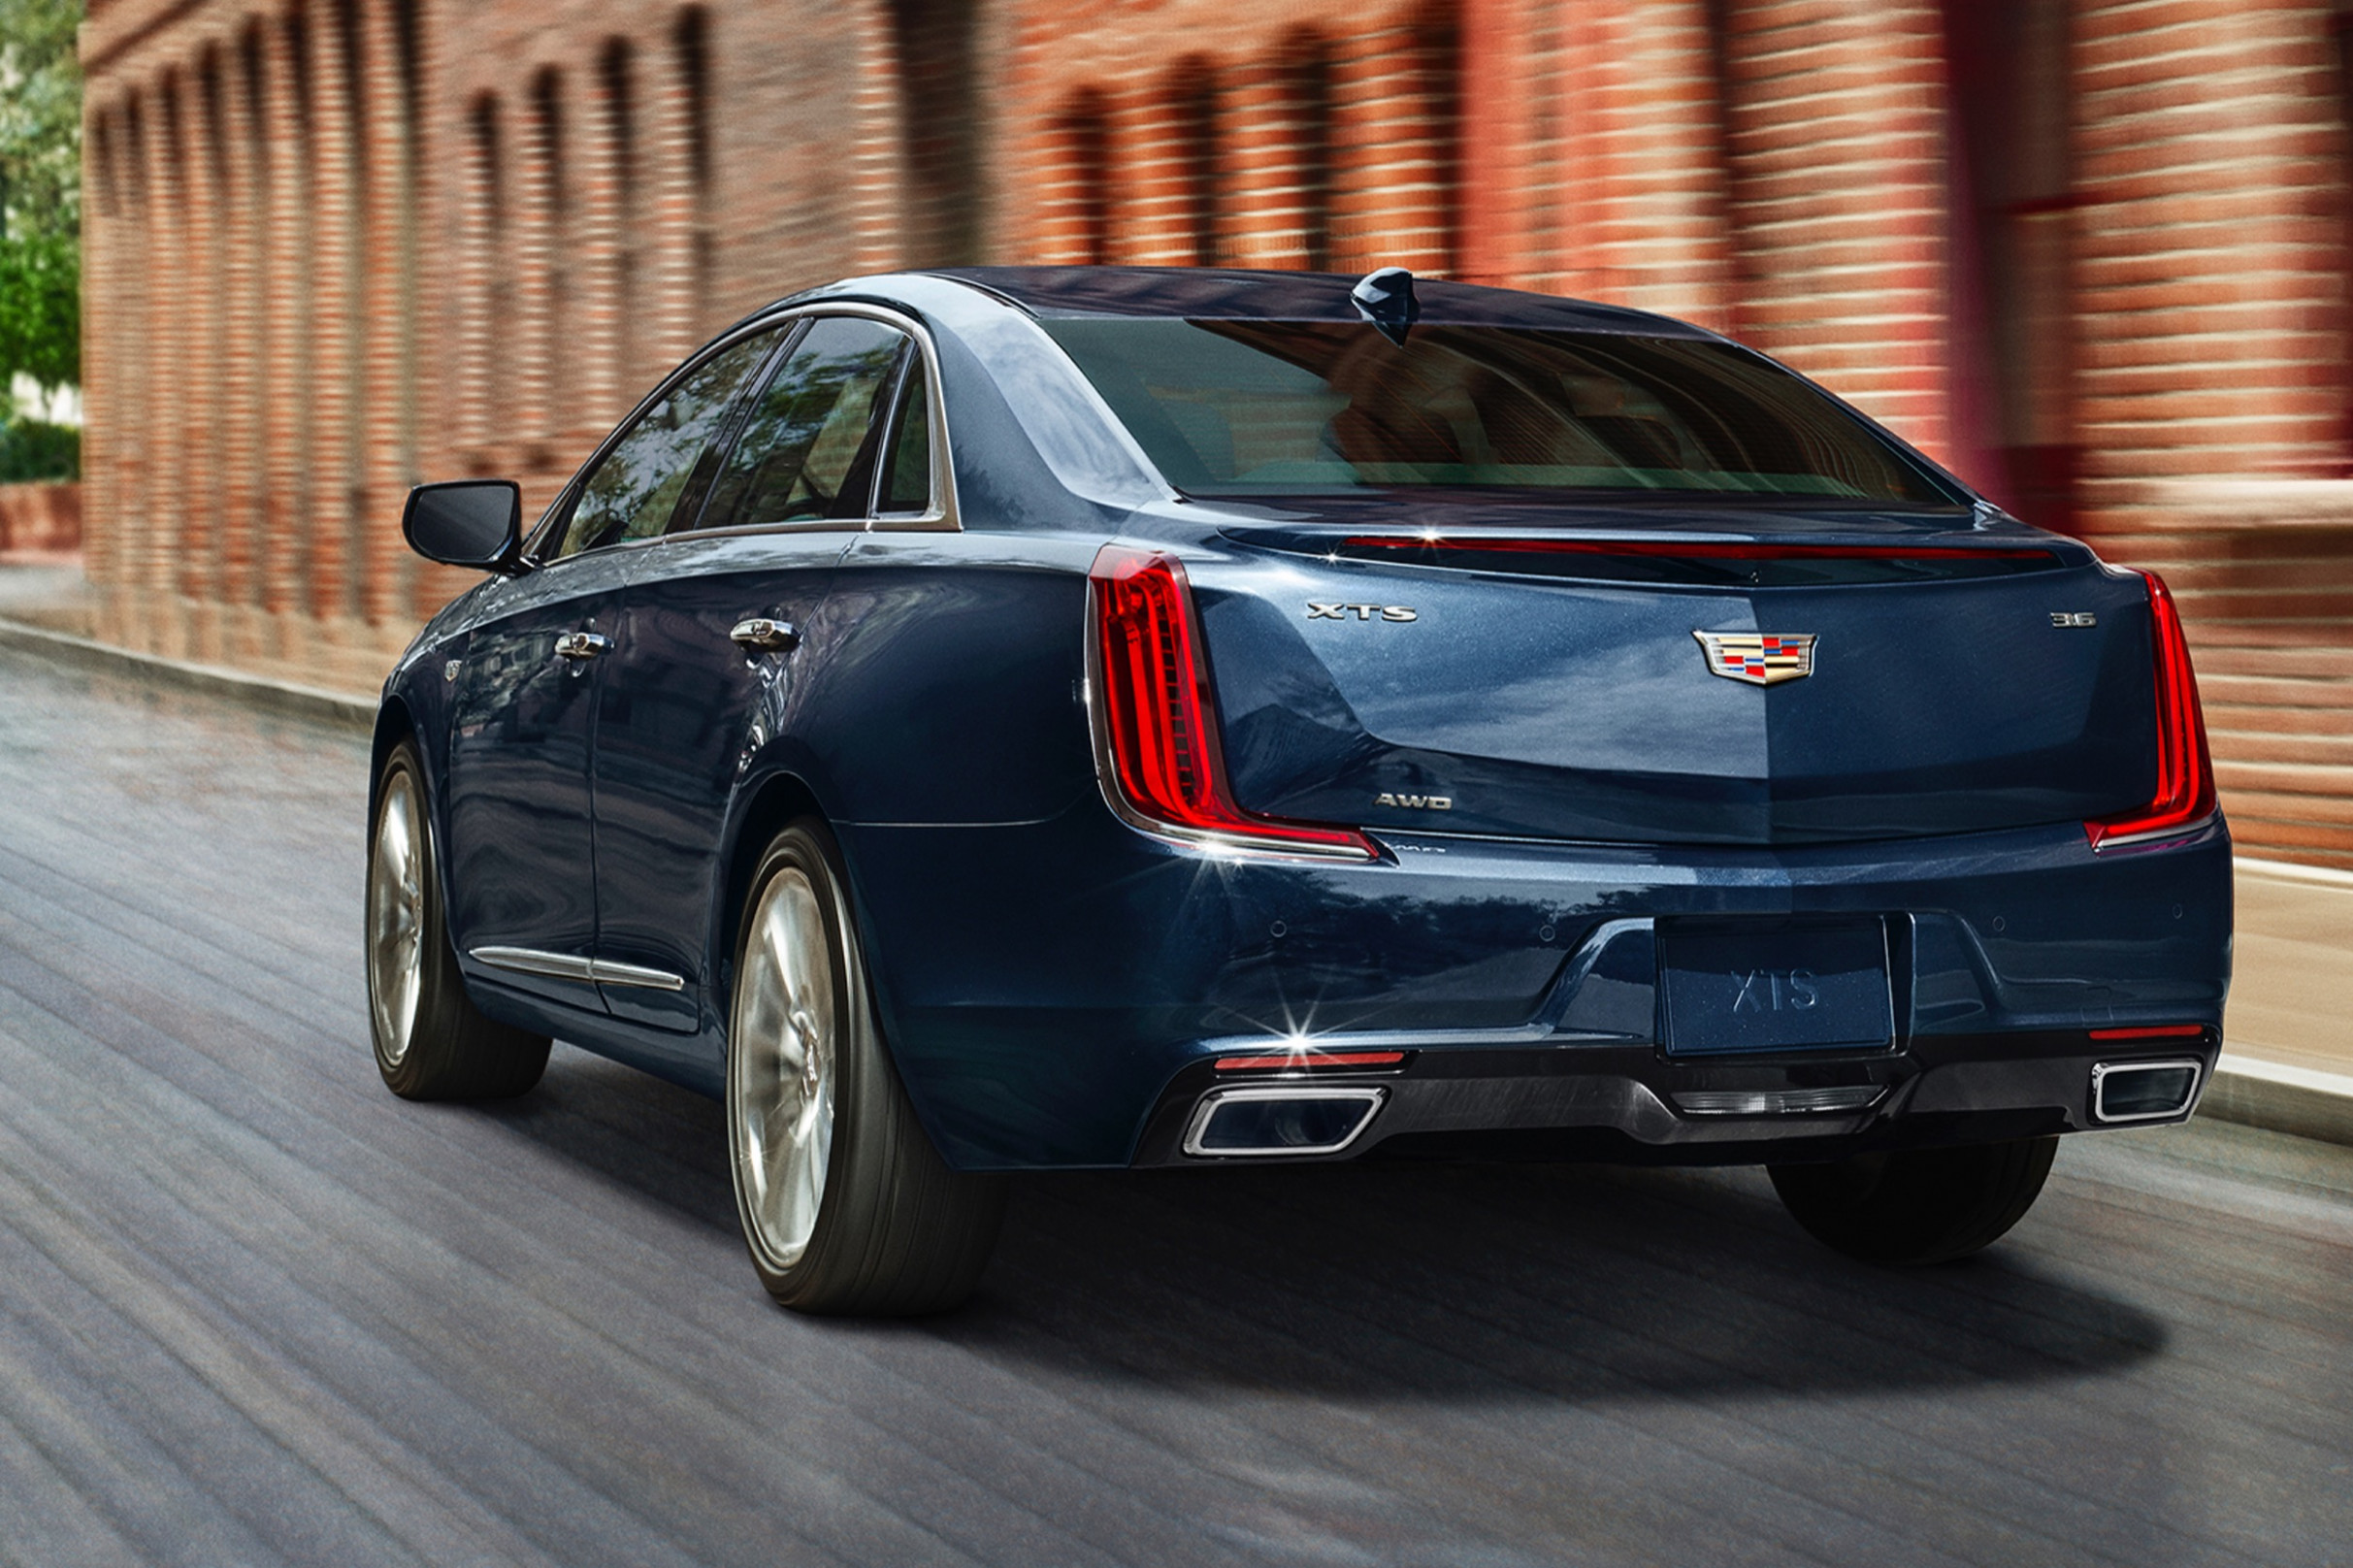 6 Cadillac XTS Info, Pictures, Specs, Wiki | GM Authority - cadillac xts 2020 price